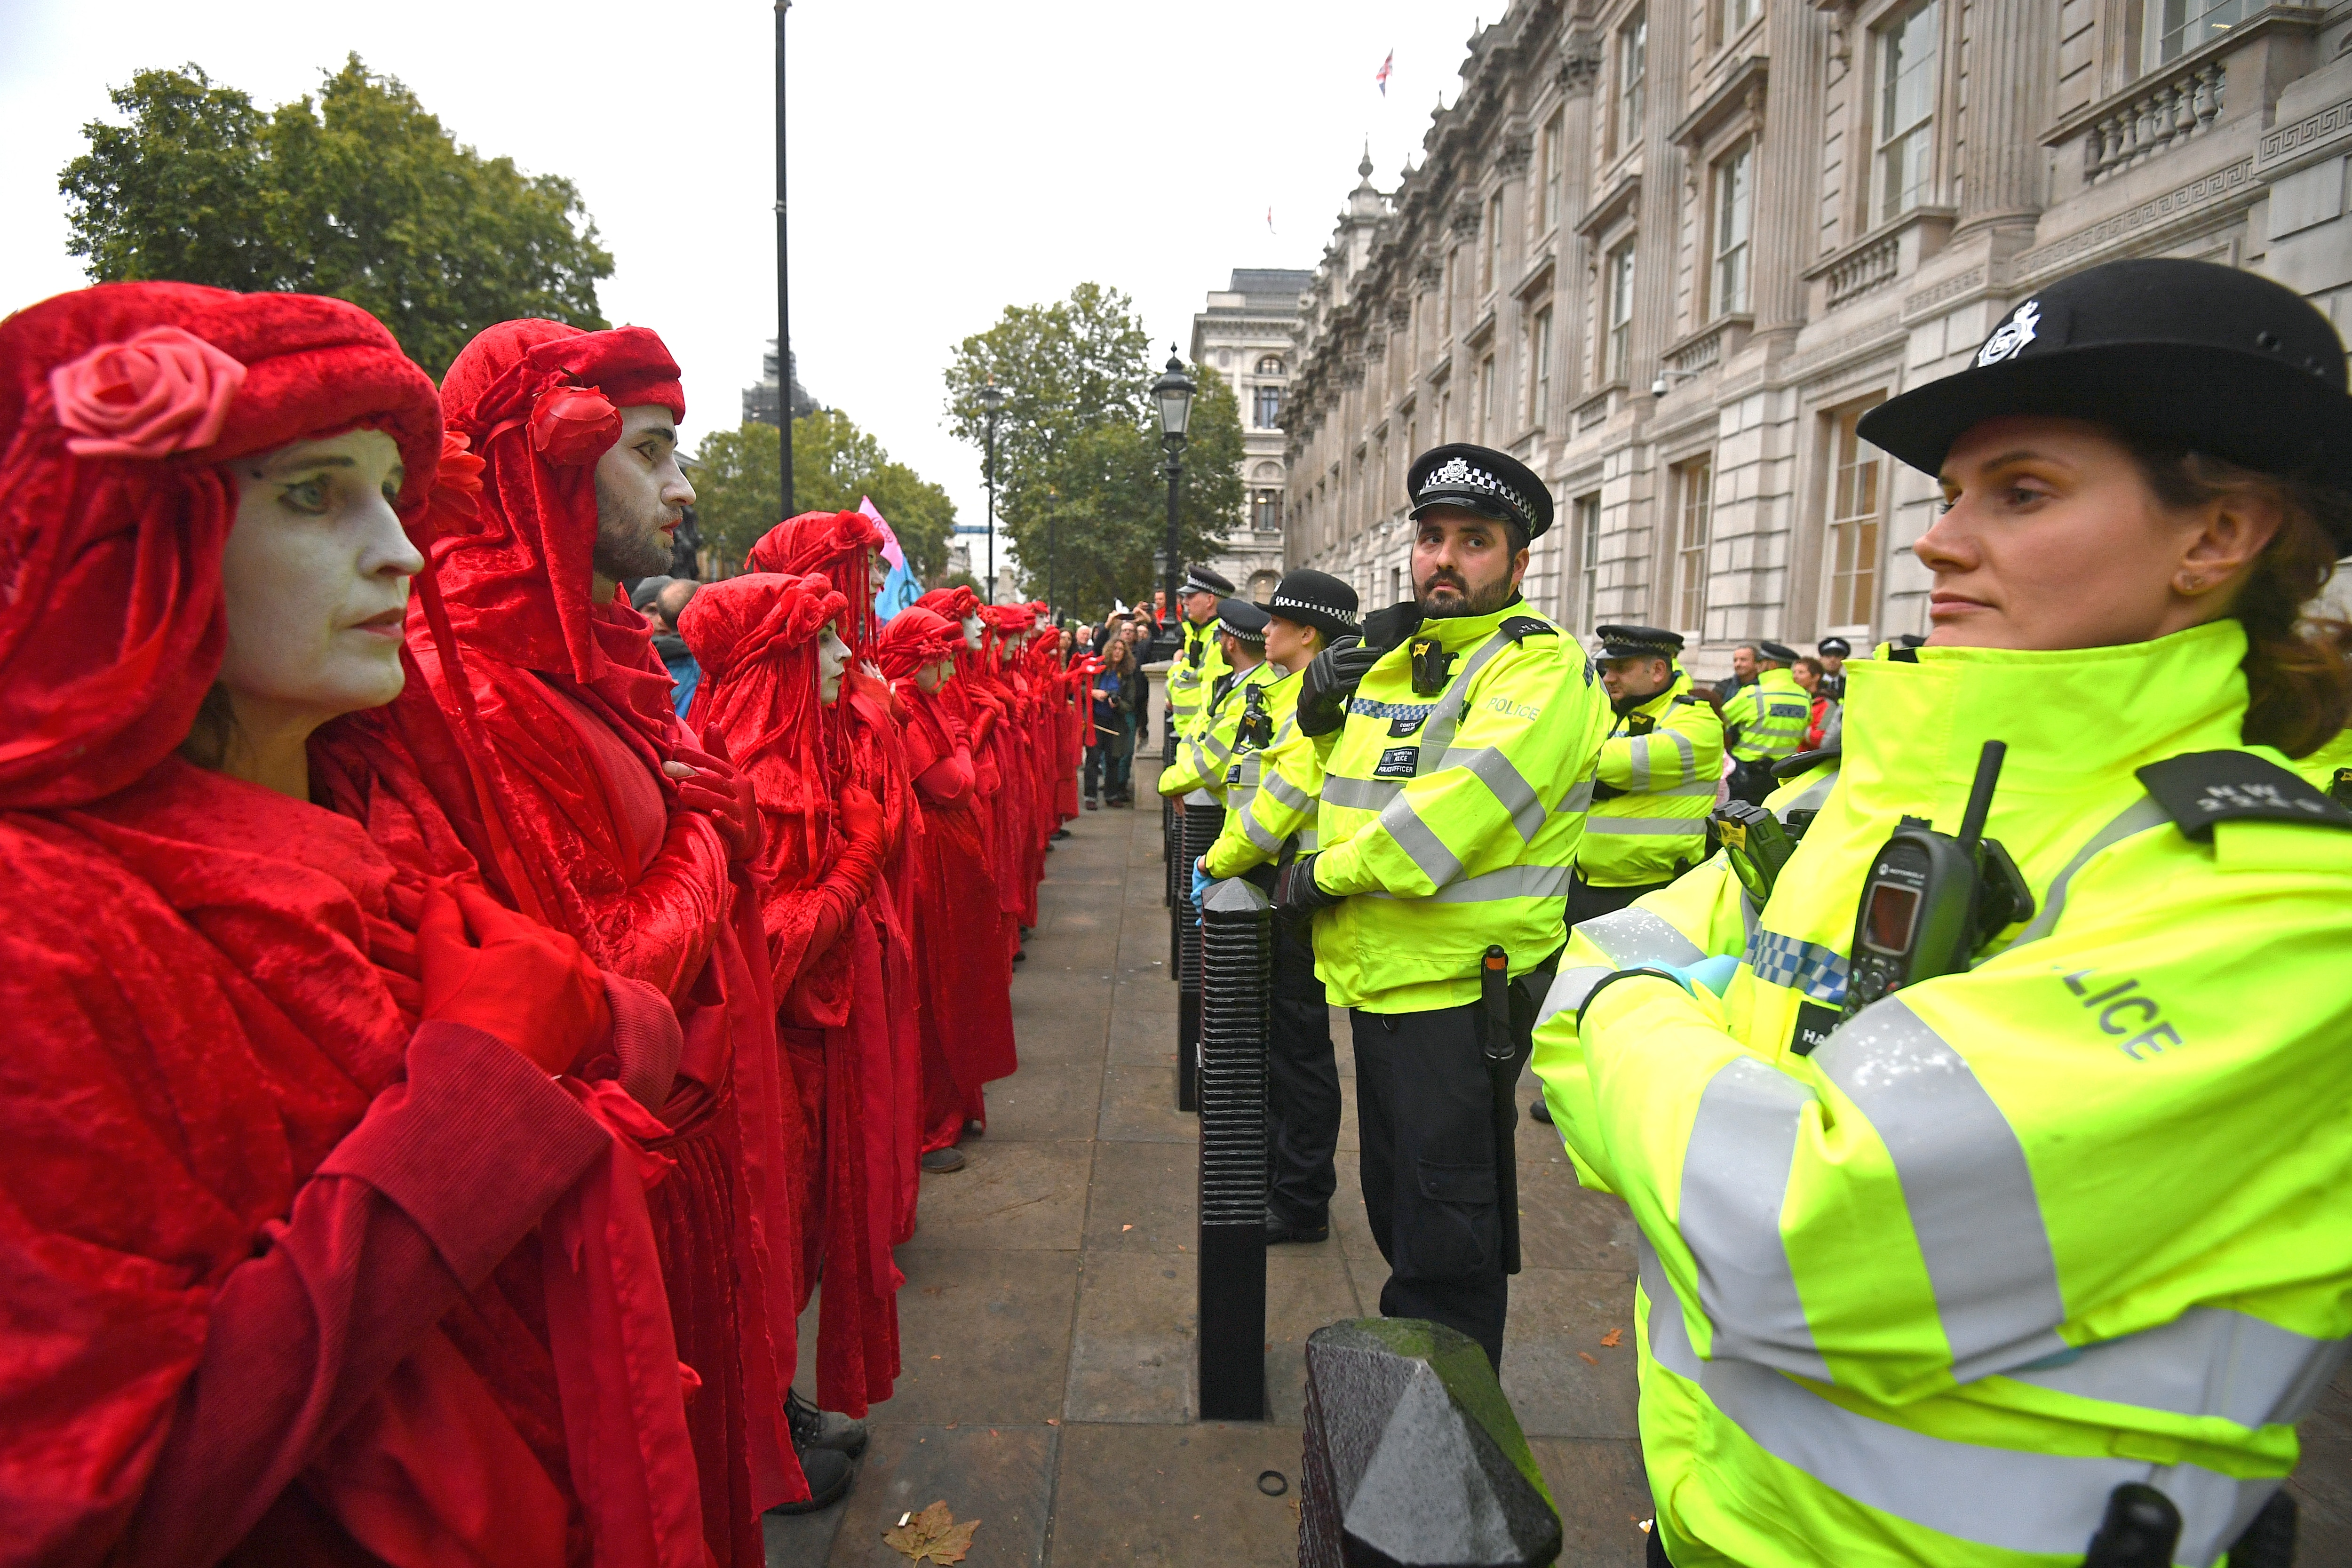 Protesters, dubbed the Red Rebels, outside the Cabinet Office on Whitehall, during an Extinction Rebellion (XR) protest in Westminster, London.